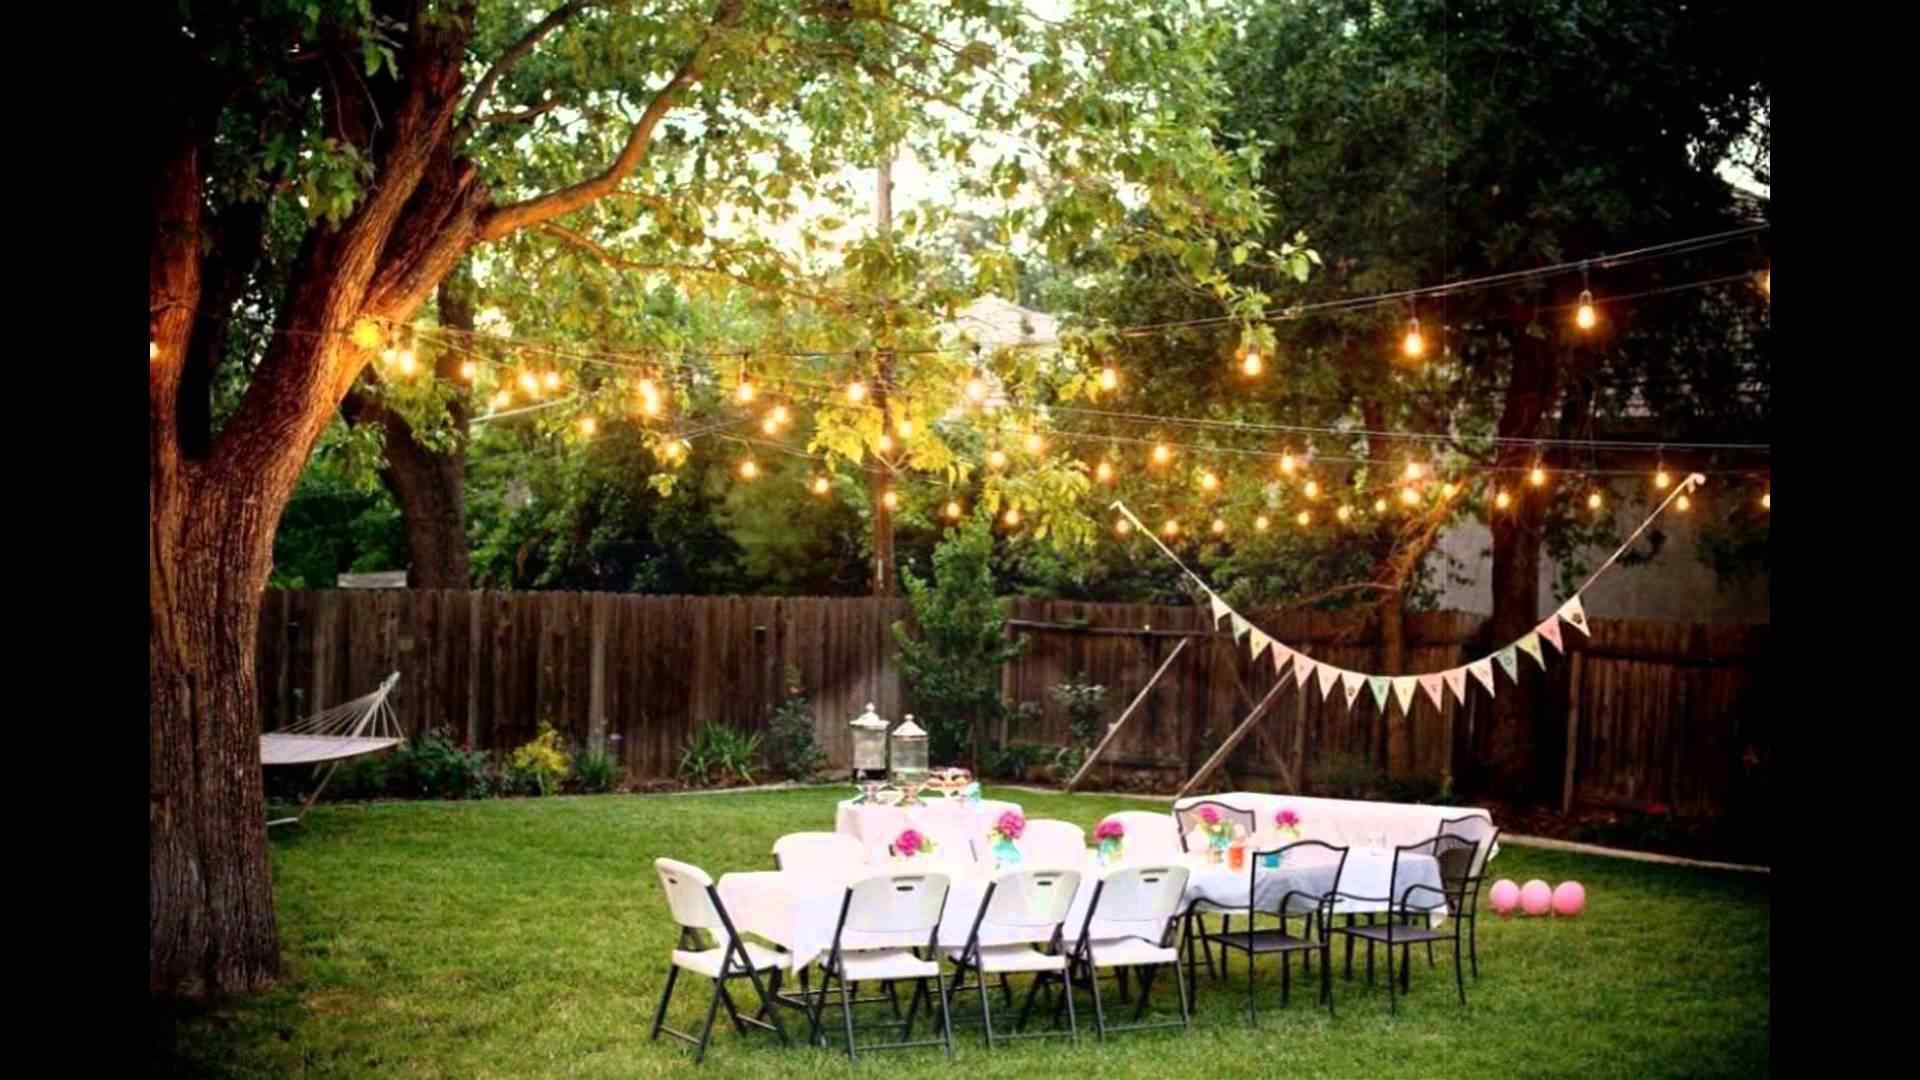 Backyard Wedding Ideas On A Budget Diy Outdoor Mason Jars Unique with 10 Awesome Concepts of How to Build Simple Backyard Wedding Ideas